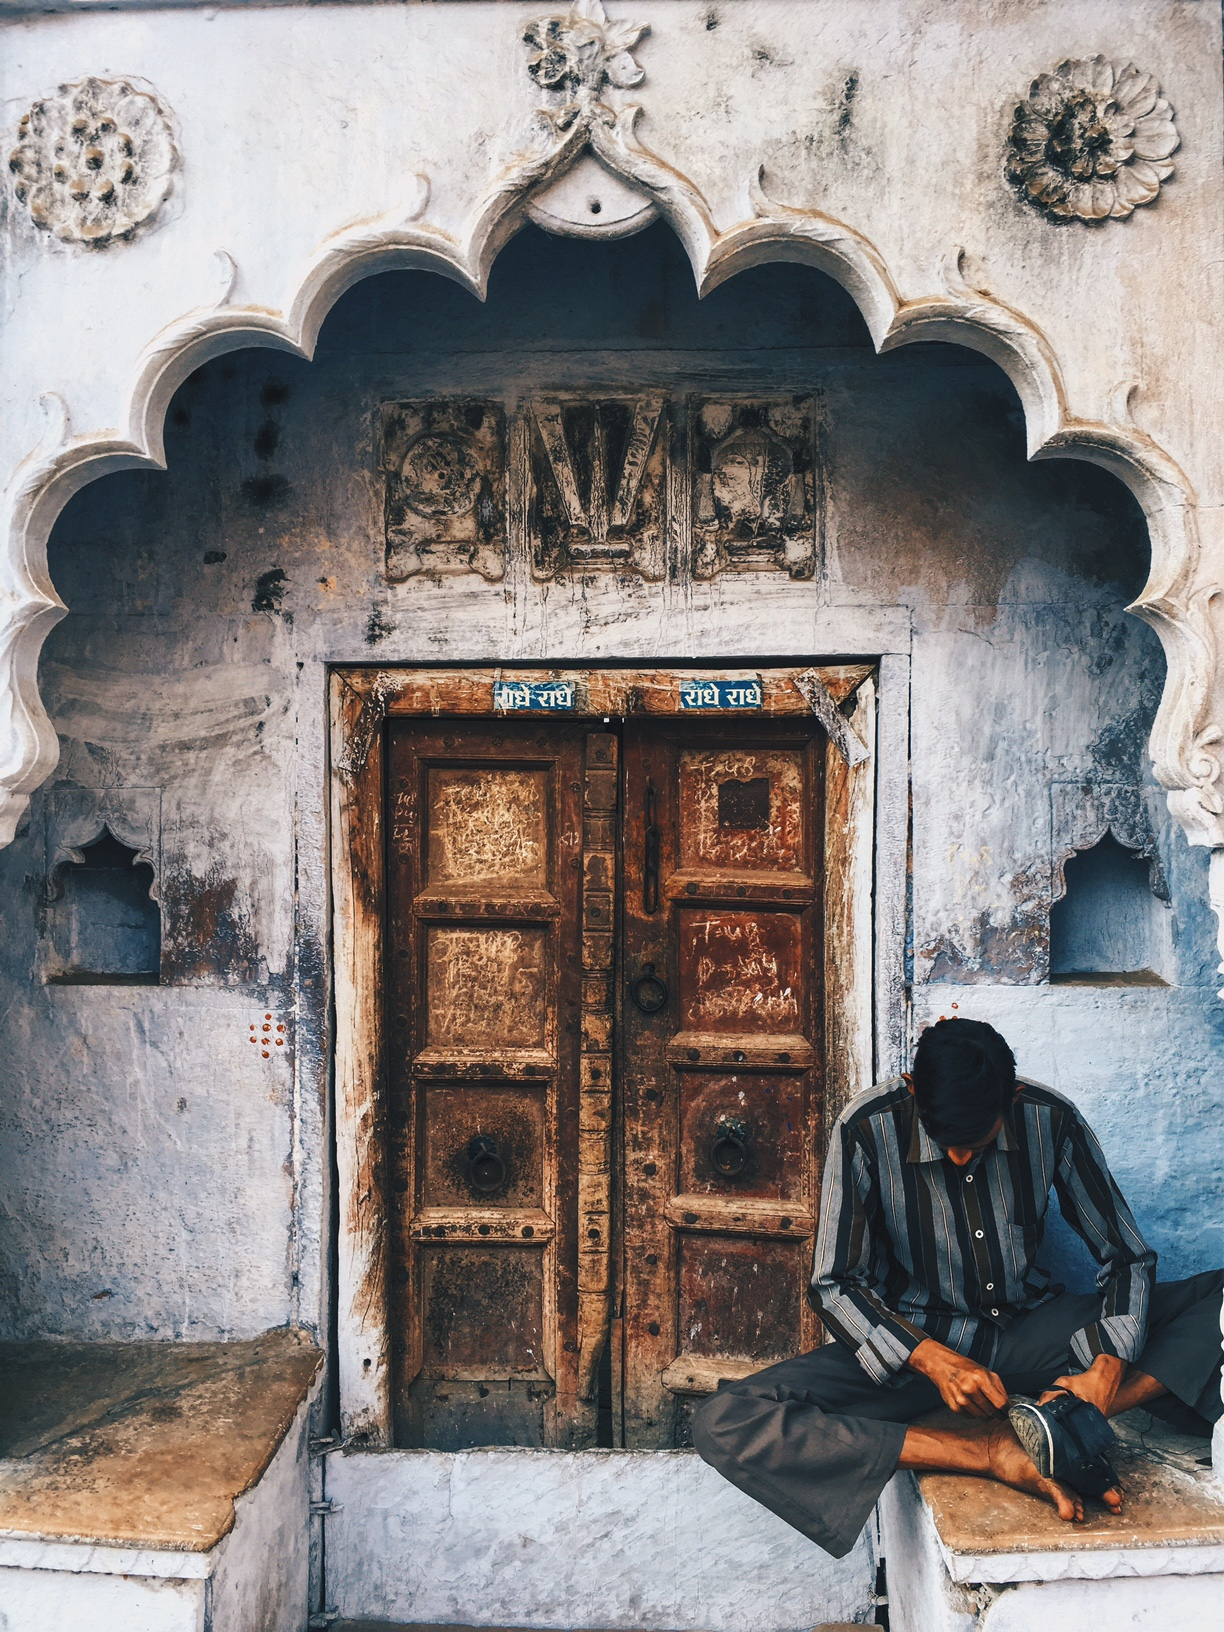 A traditional old door with a man resting next to it. & Doors Are Stories: The Photographic Obsession of Divyakshi Gupta ...